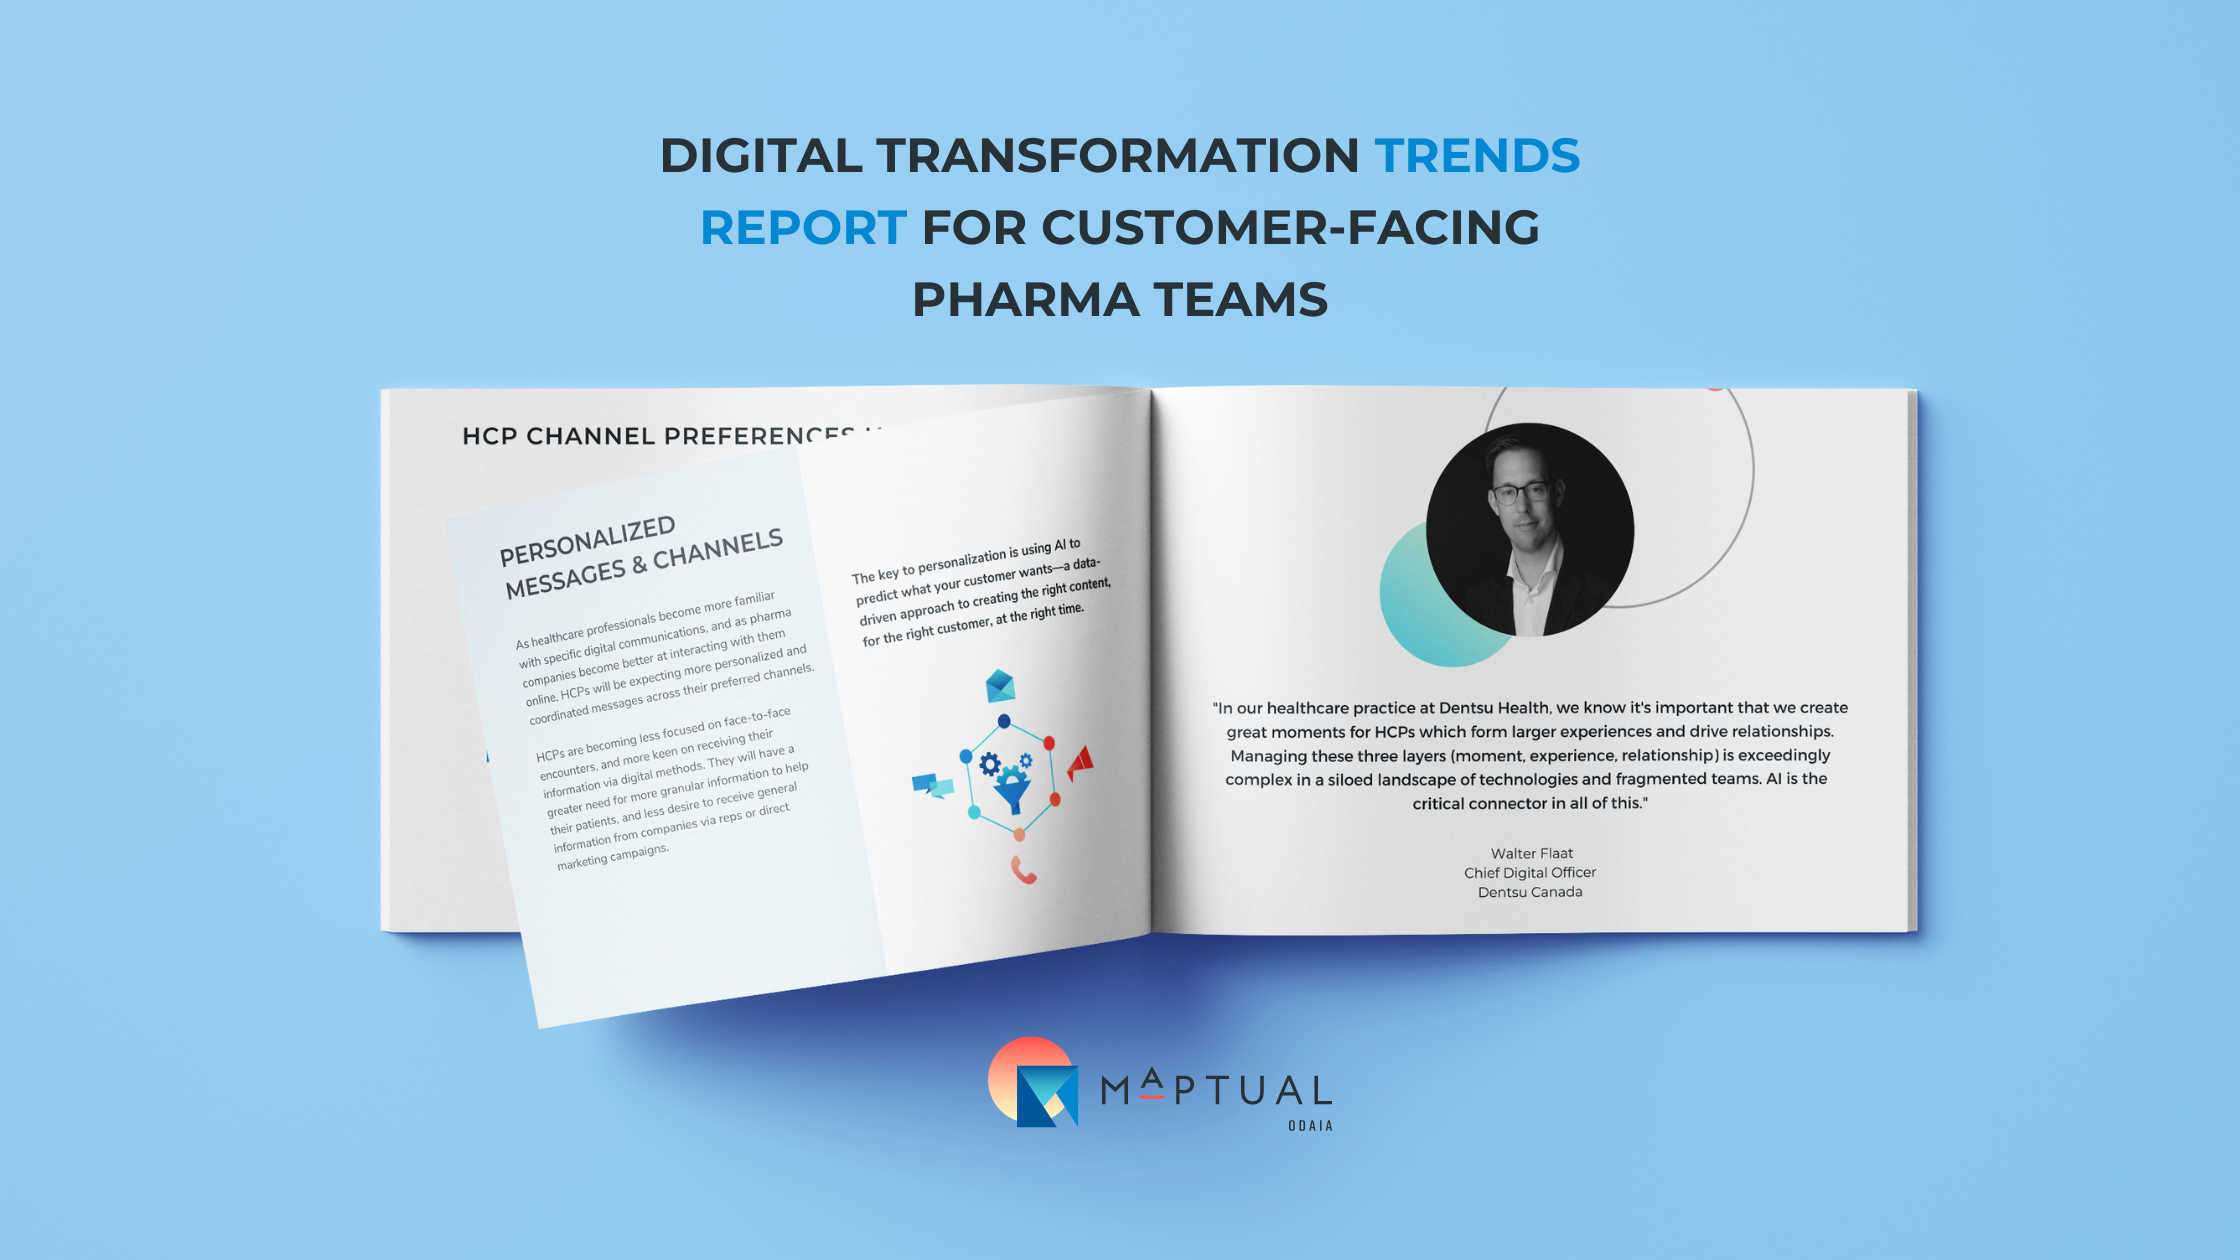 Recently, I had the pleasure of moderating a panel for the 2021 NEXT Normal digital pharma summit. The conference was a great opportunity to hear from